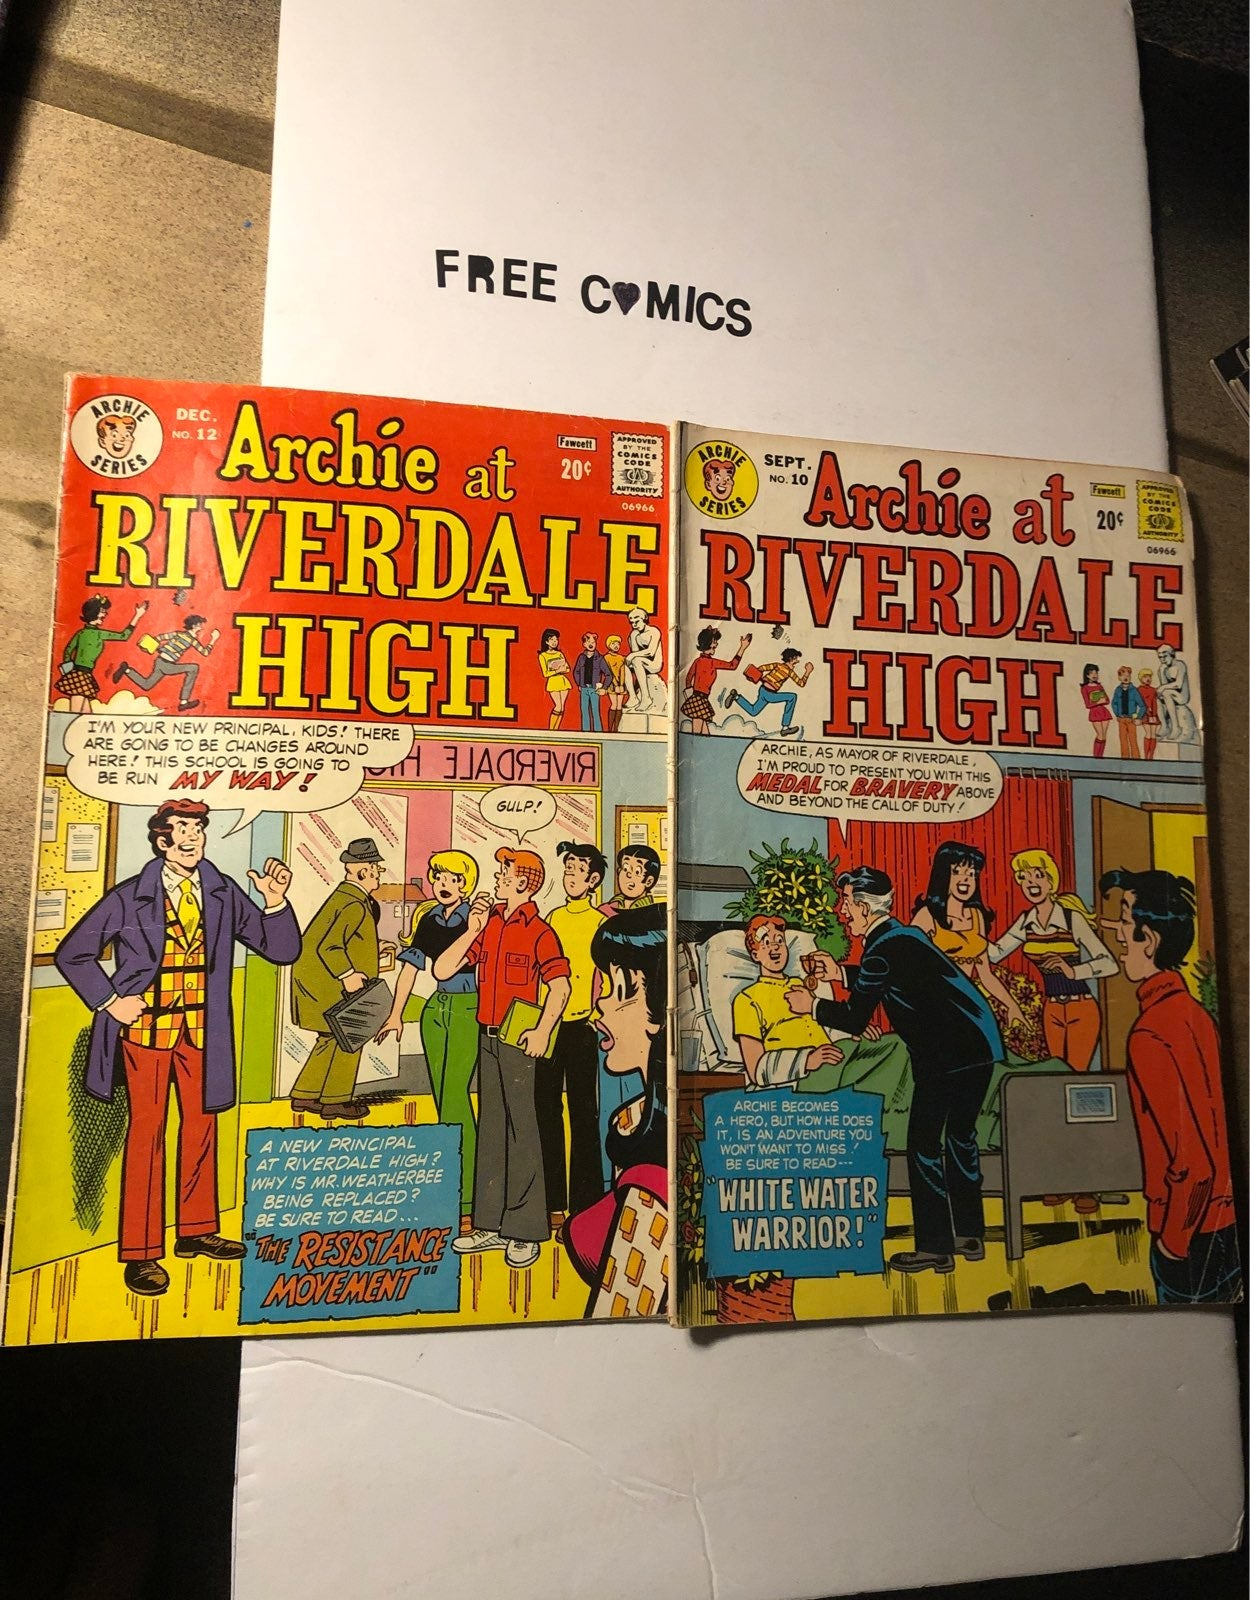 Archie at Riverdale High #'s 10 & 12